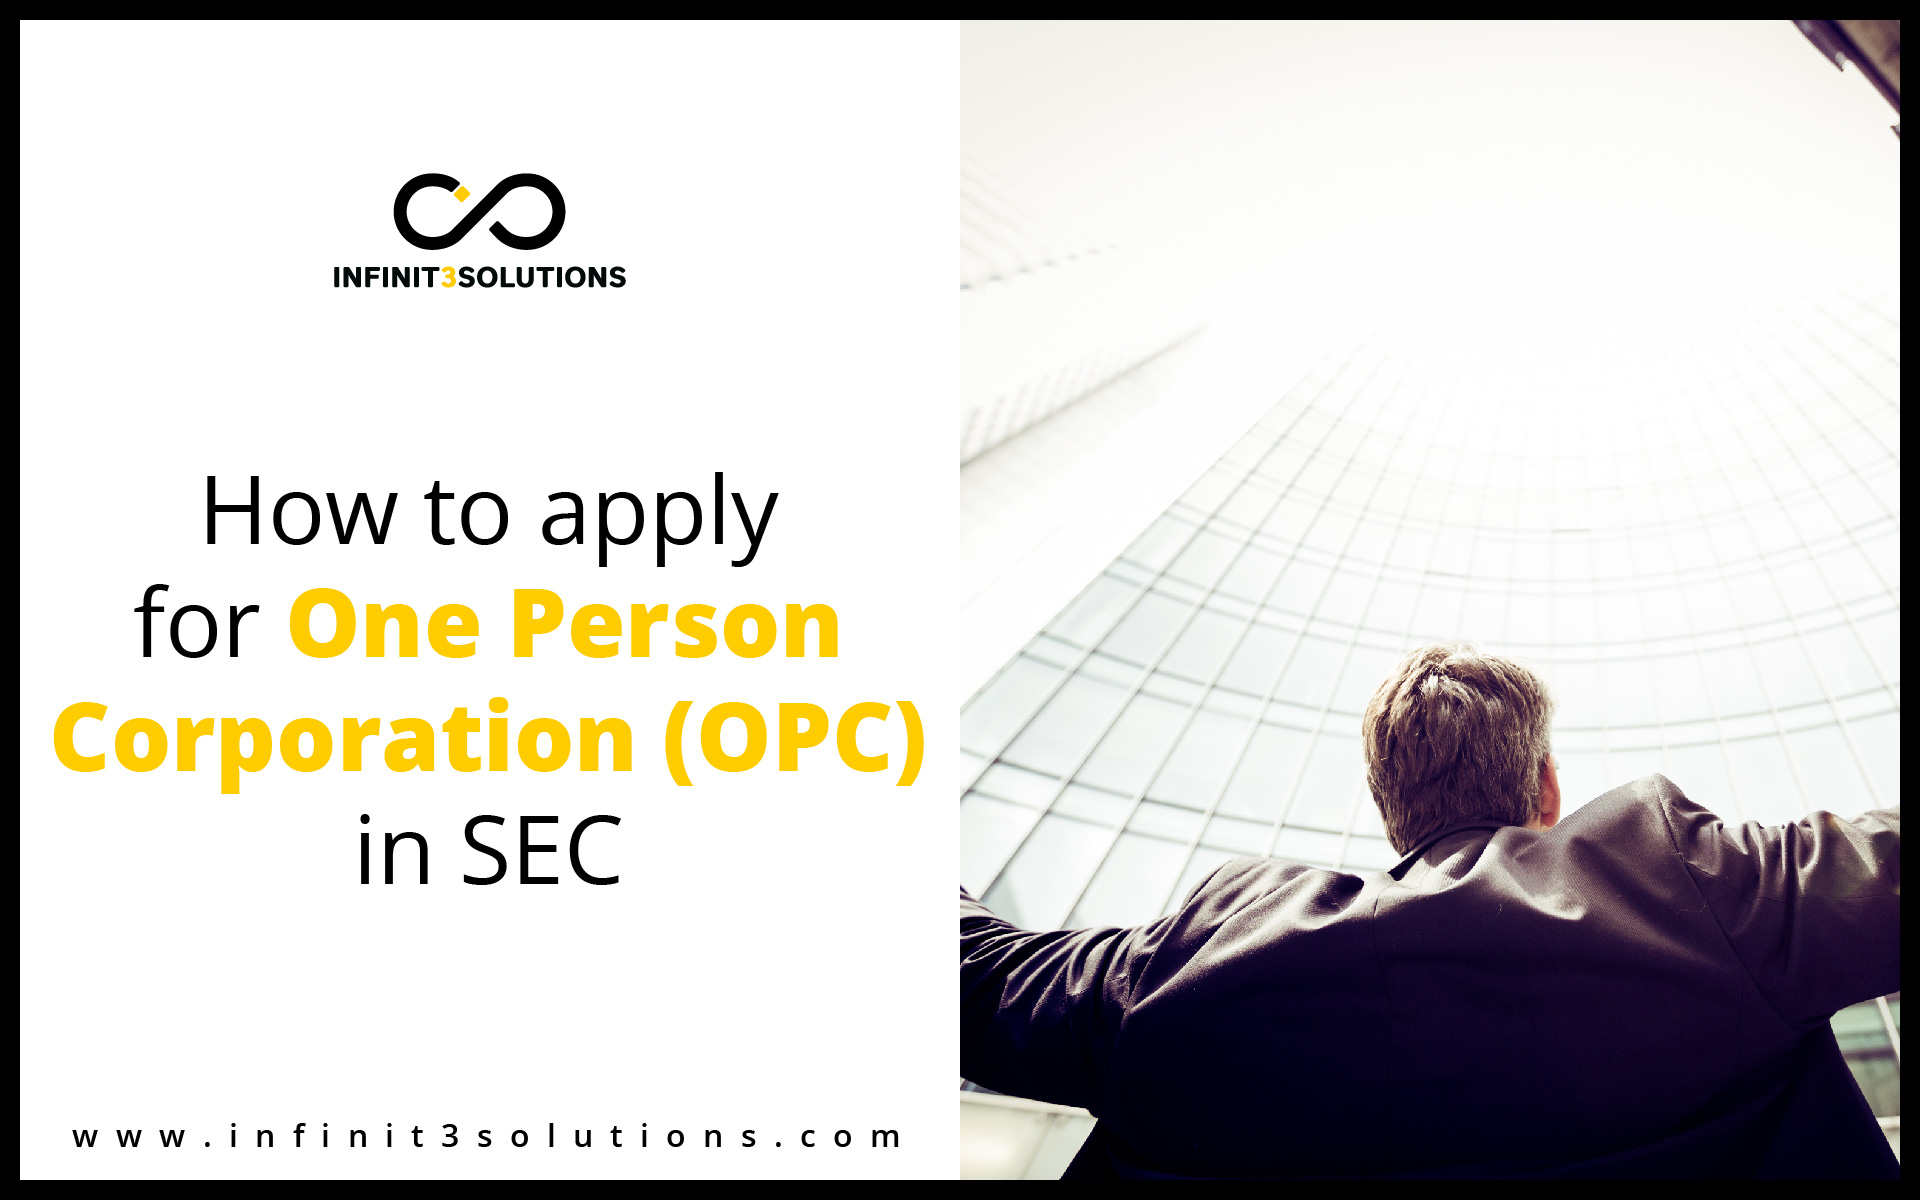 How to open one person corporation (OPC) in SEC